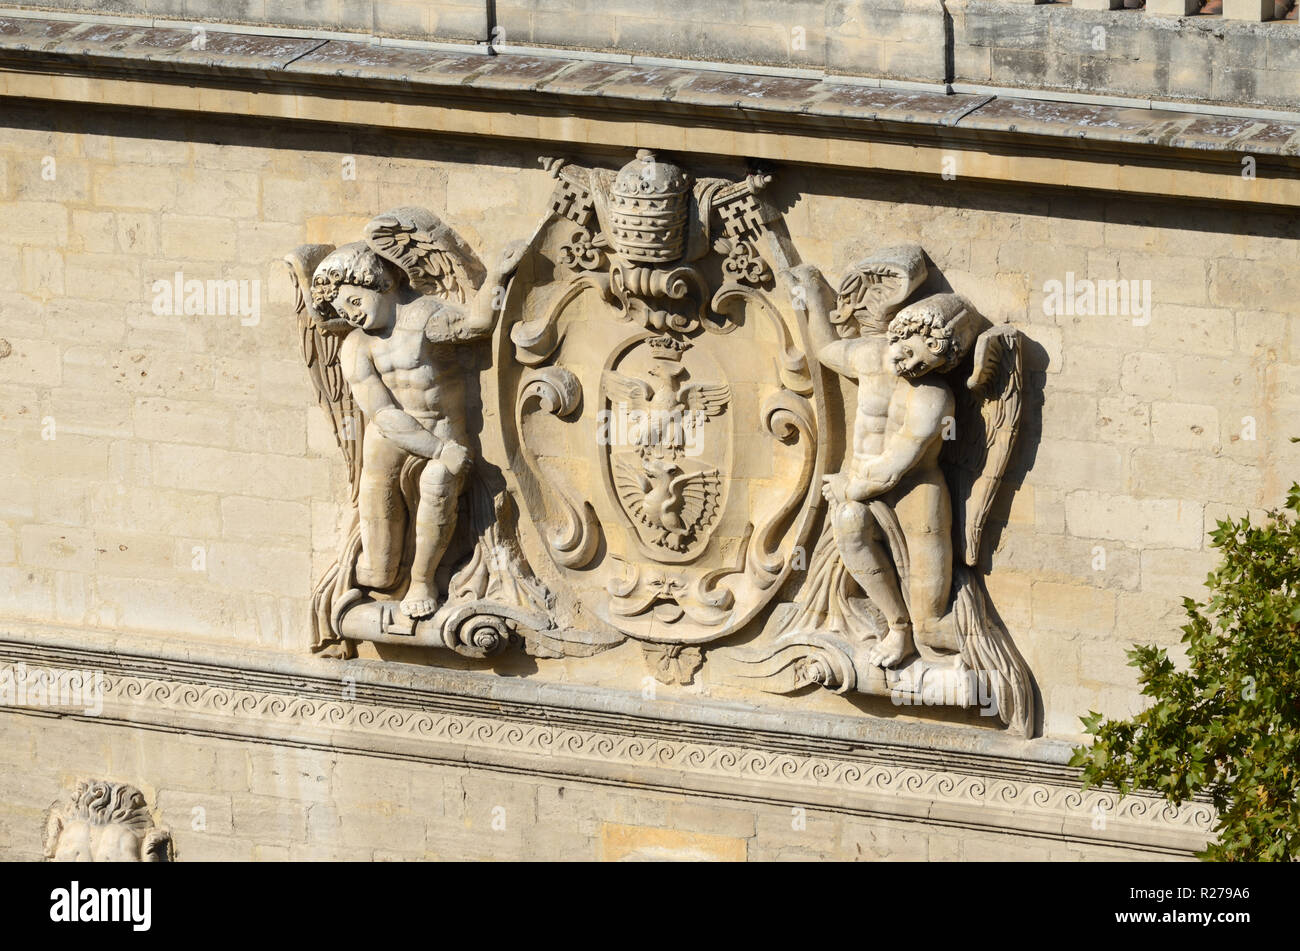 Coat-of-Arms of the Borghese Family or Baroque Facade & Sculpture of the Hôtel des Monnaies (1619) Mansion or Townhouse Avignon Provence - Stock Image